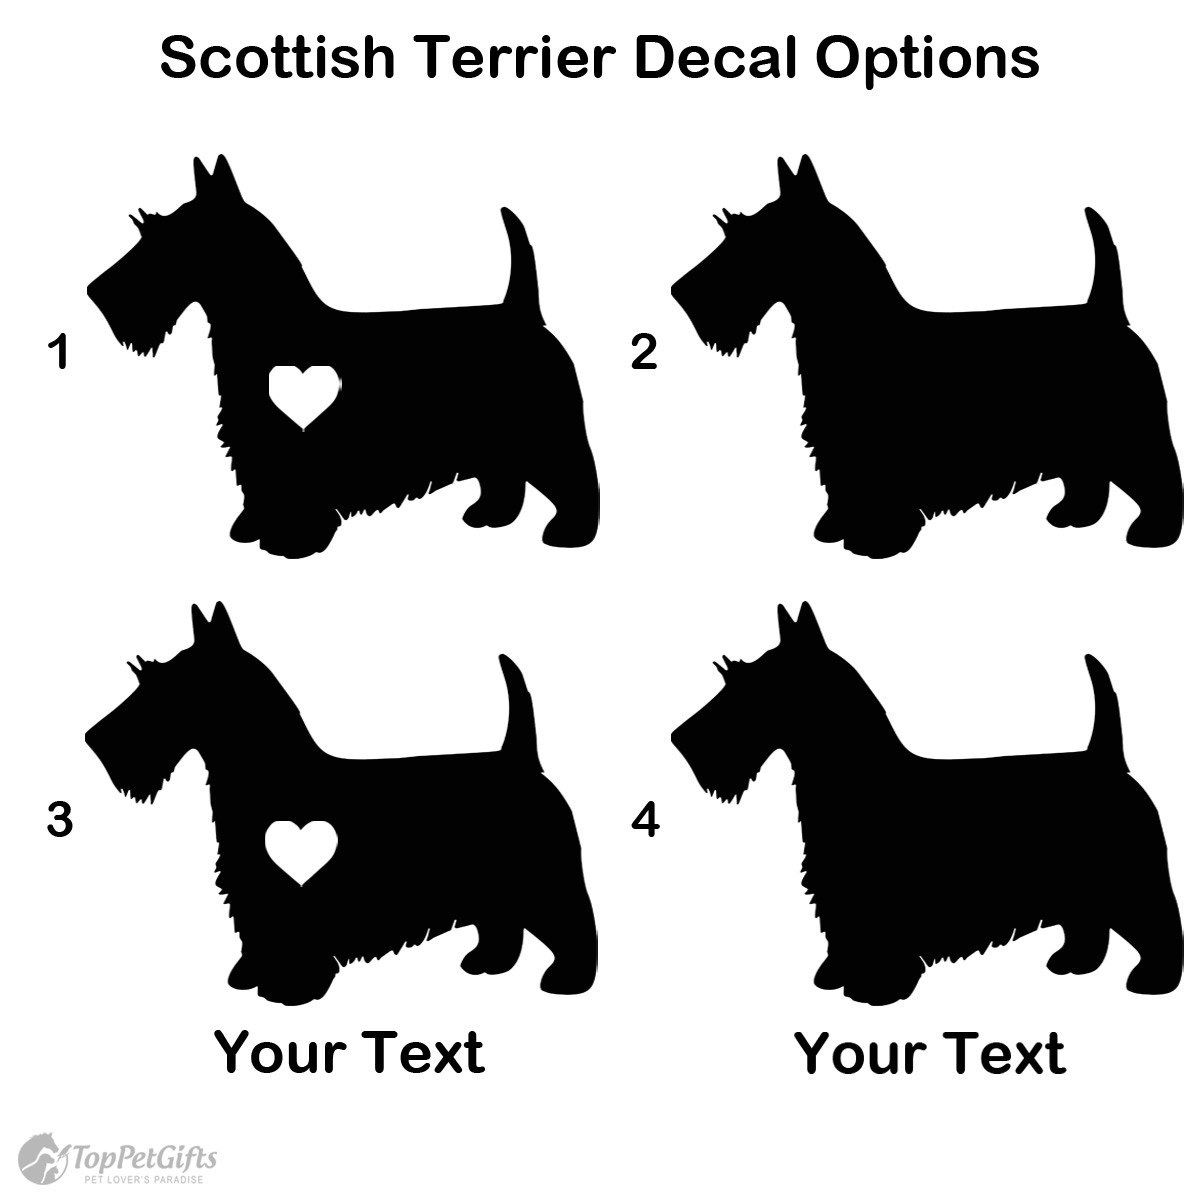 Personalized Scottish Terrier Decal